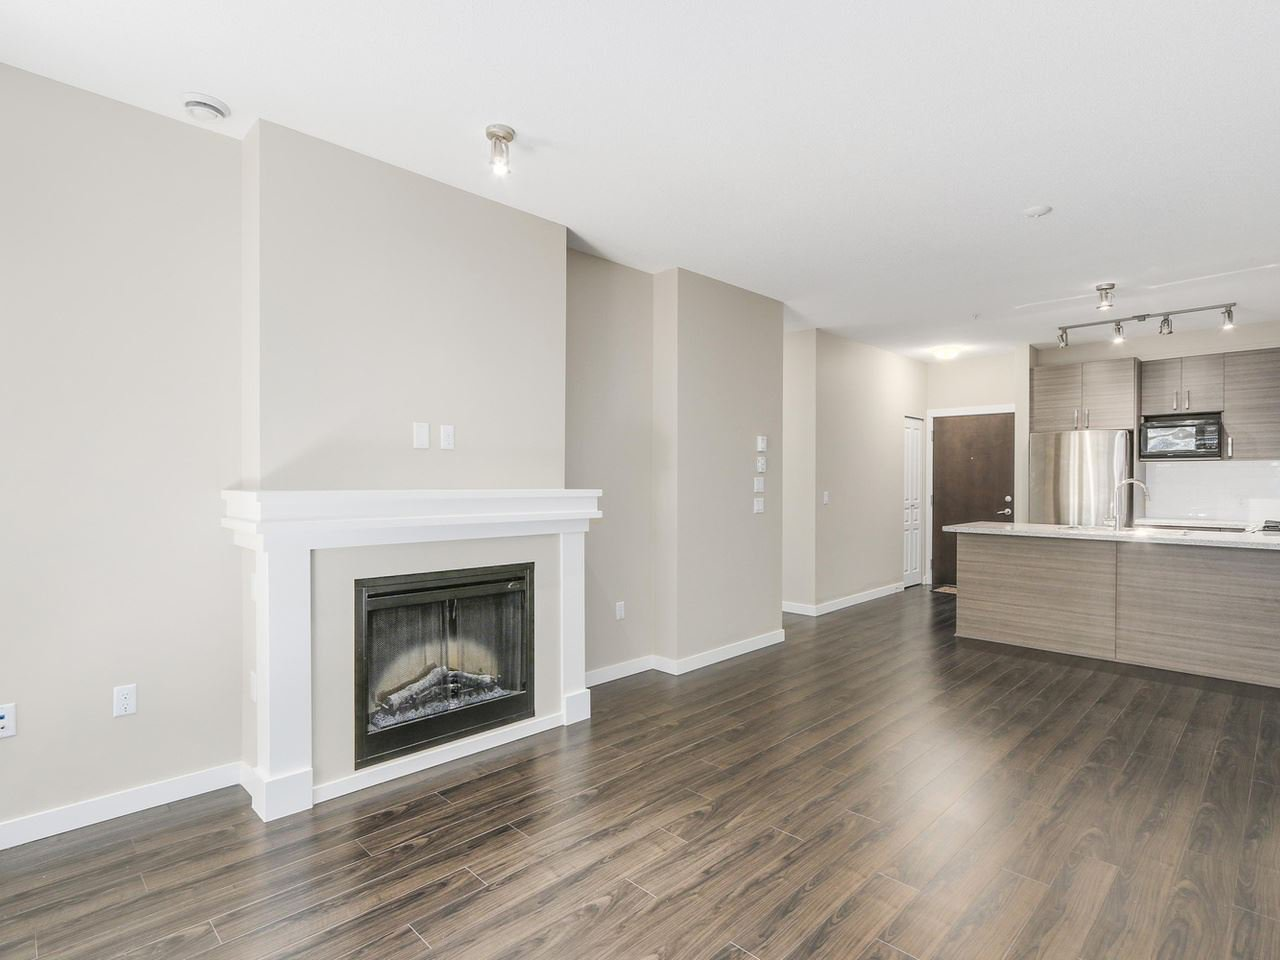 """Photo 3: Photos: 108 1150 KENSAL Place in Coquitlam: New Horizons Condo for sale in """"Windsor Gate"""" : MLS®# R2102595"""